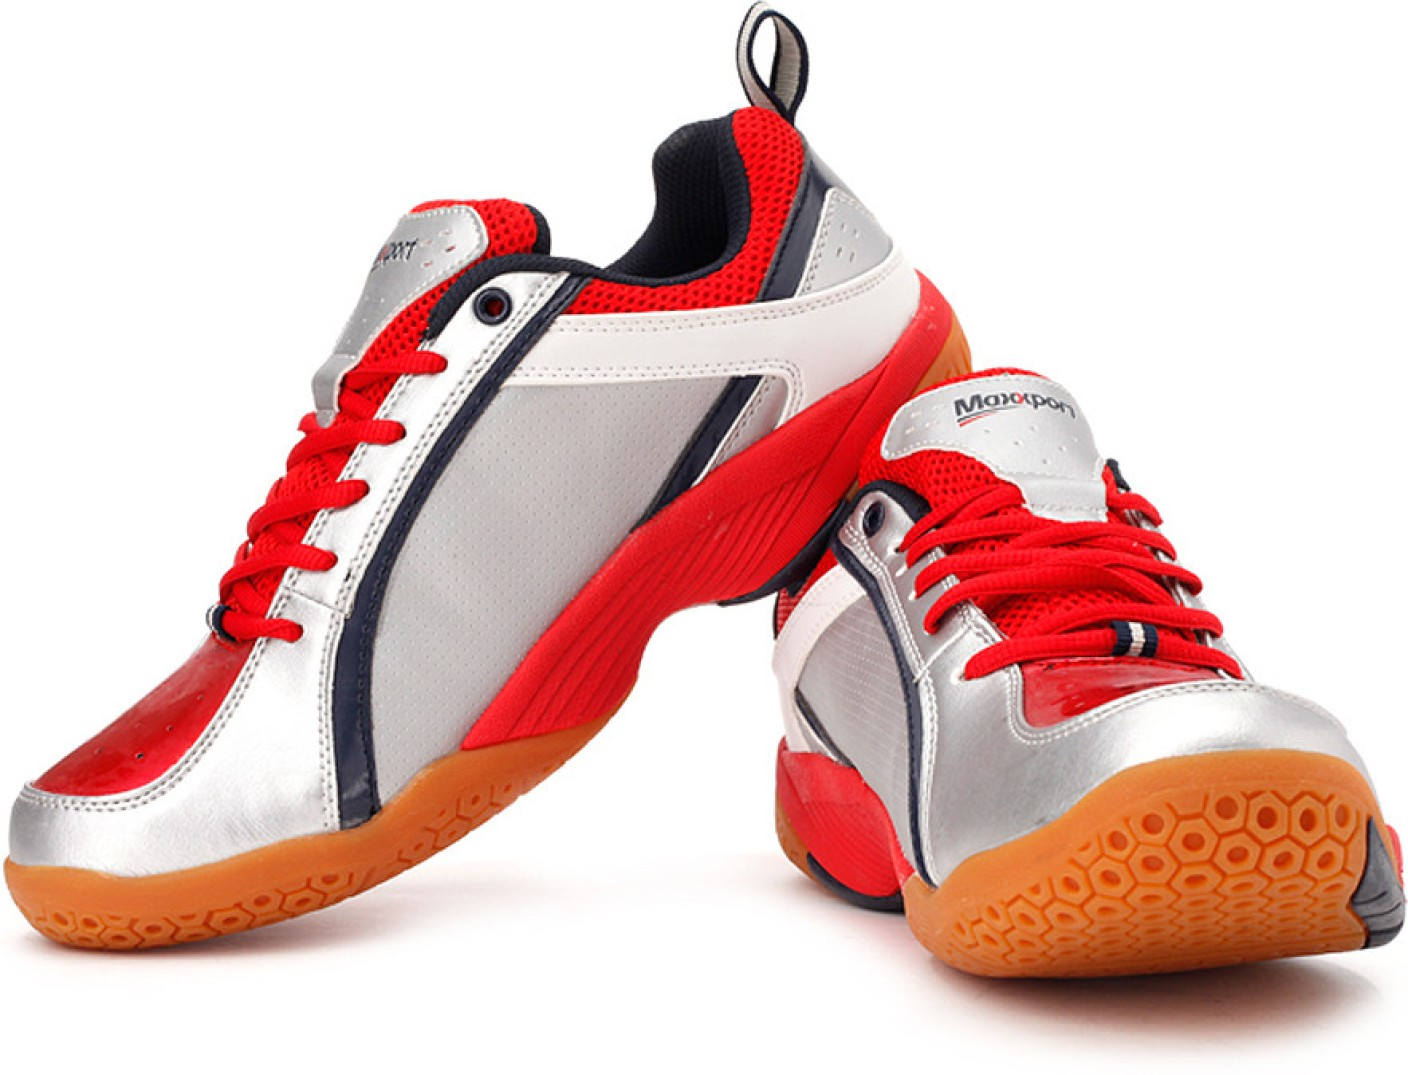 Proace Shoes Price